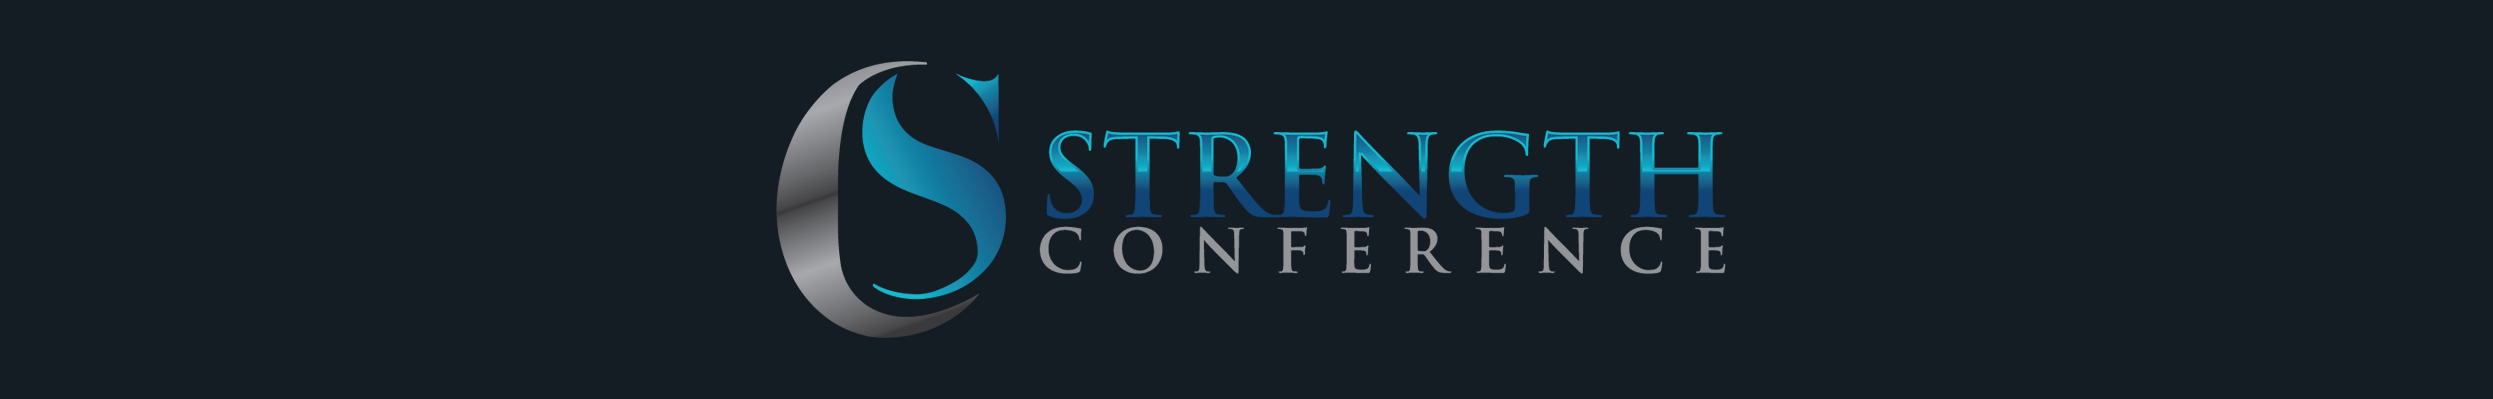 Strength Conference 2019